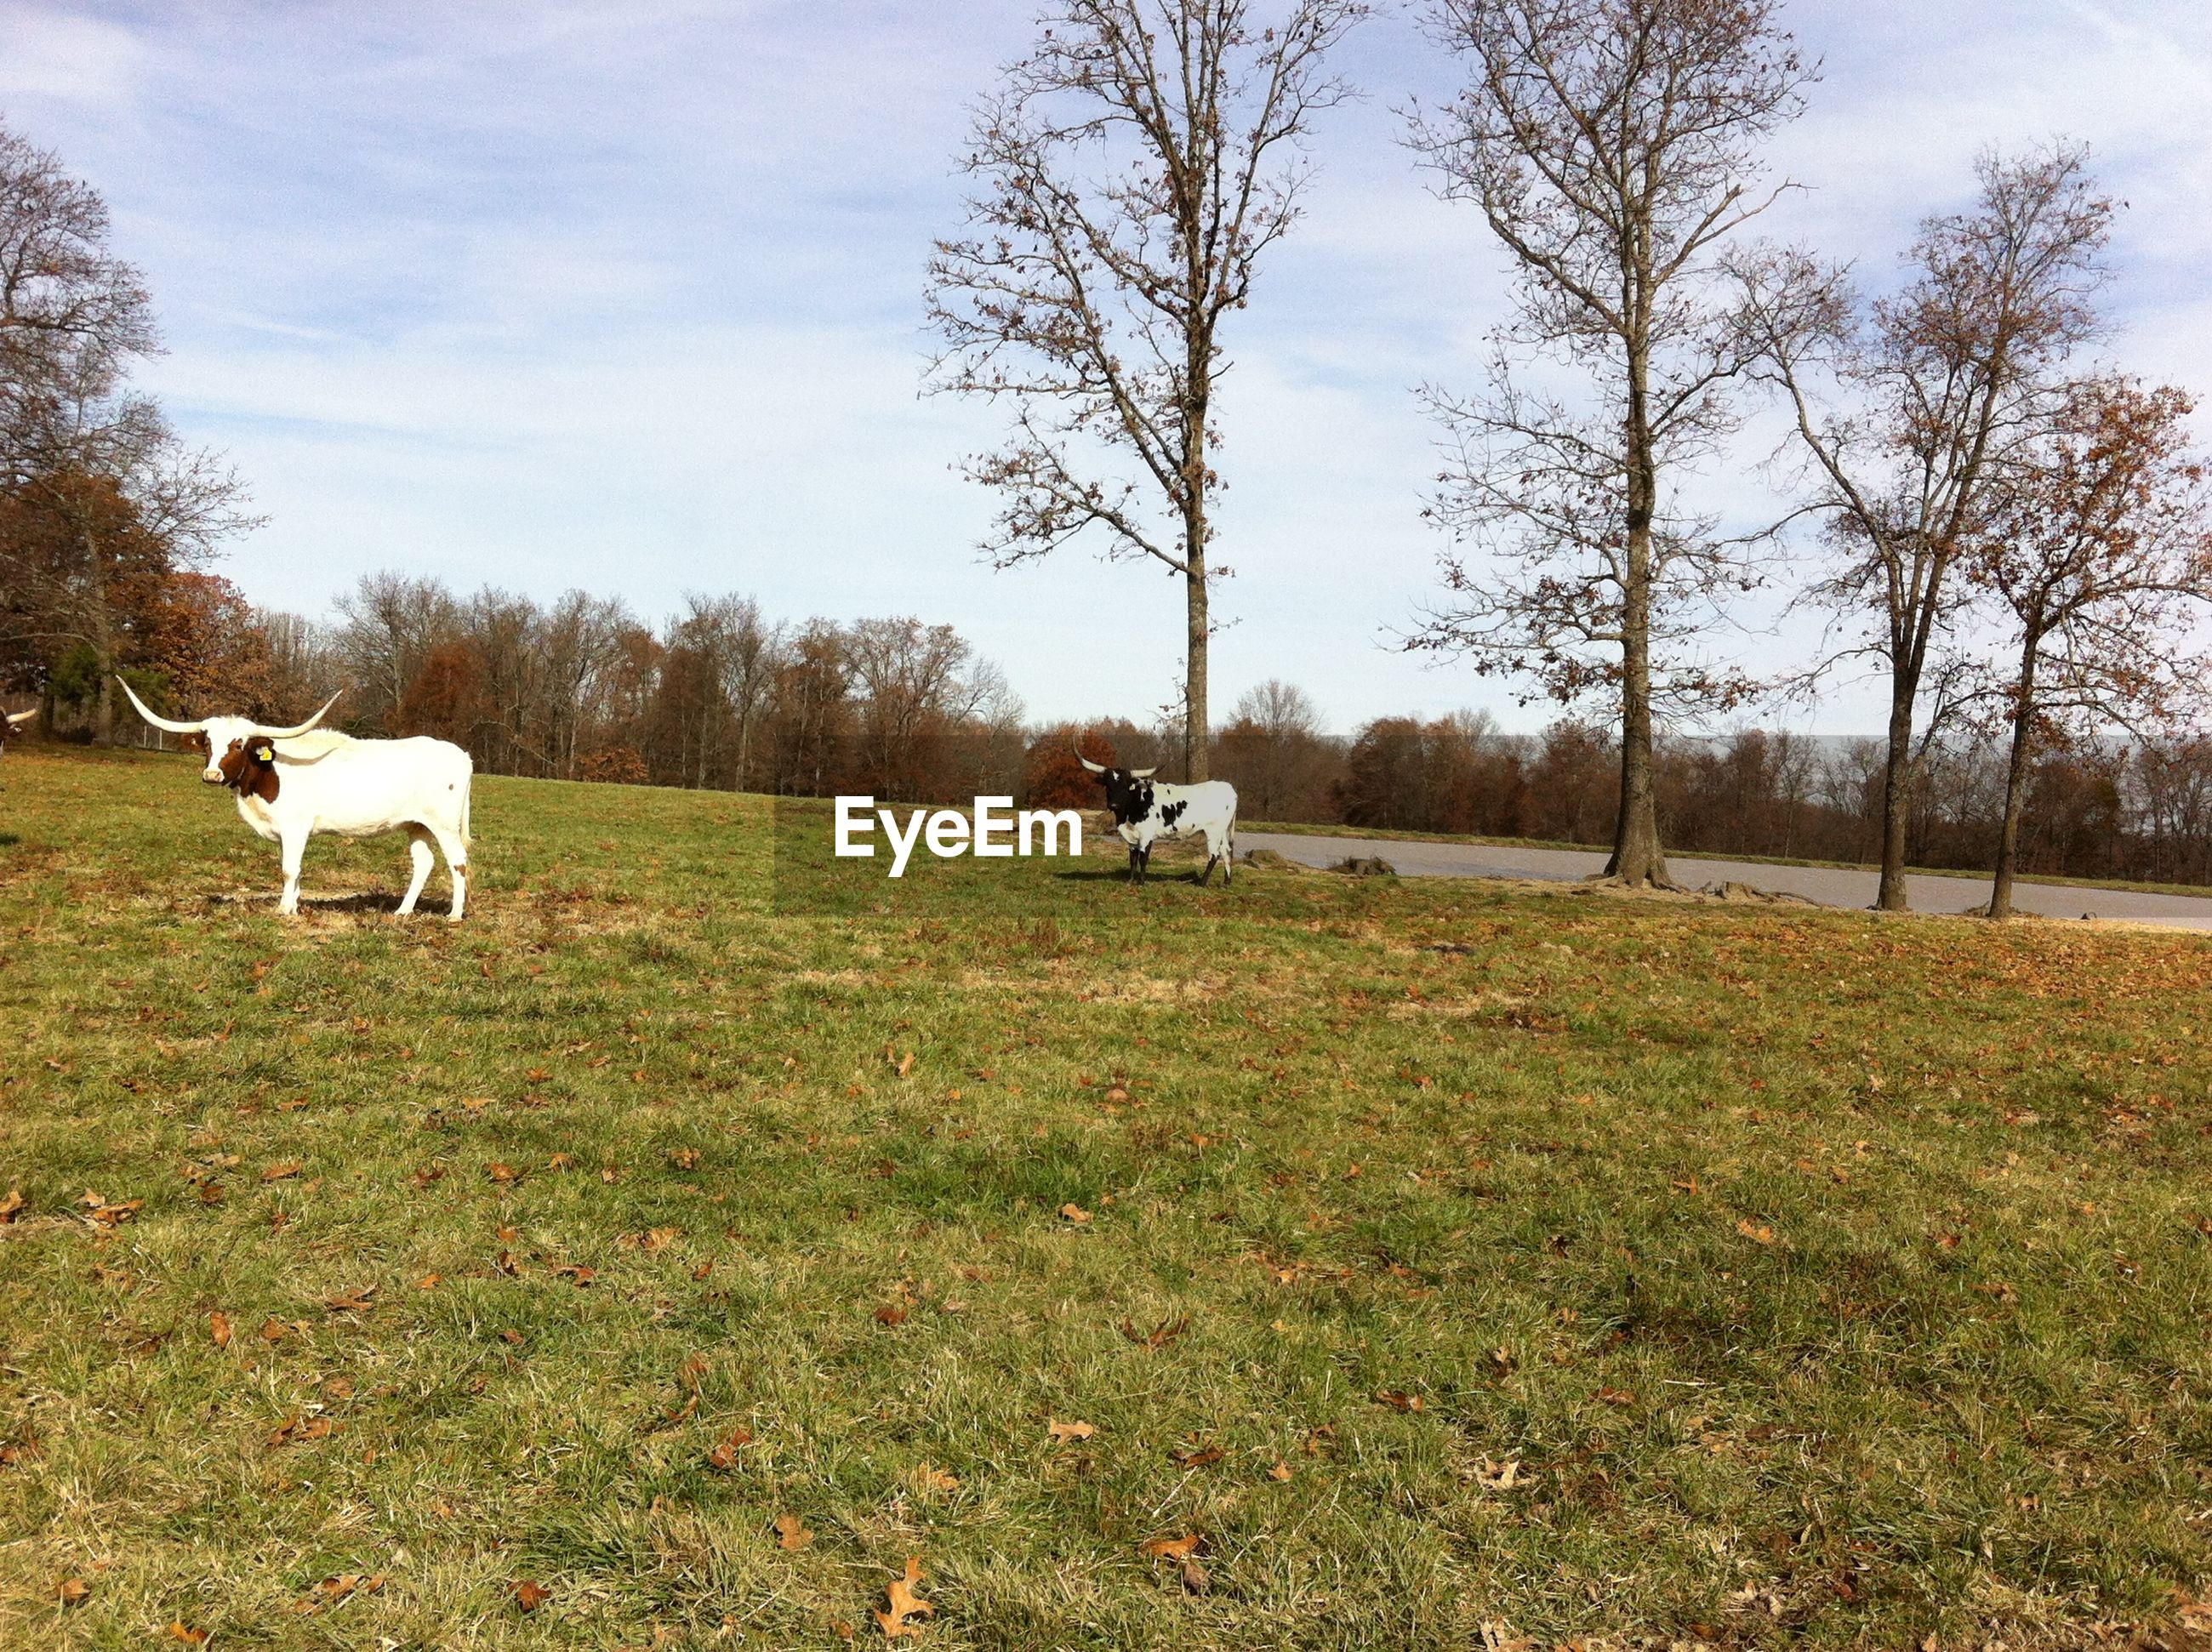 Scenic view of cows on grassy field